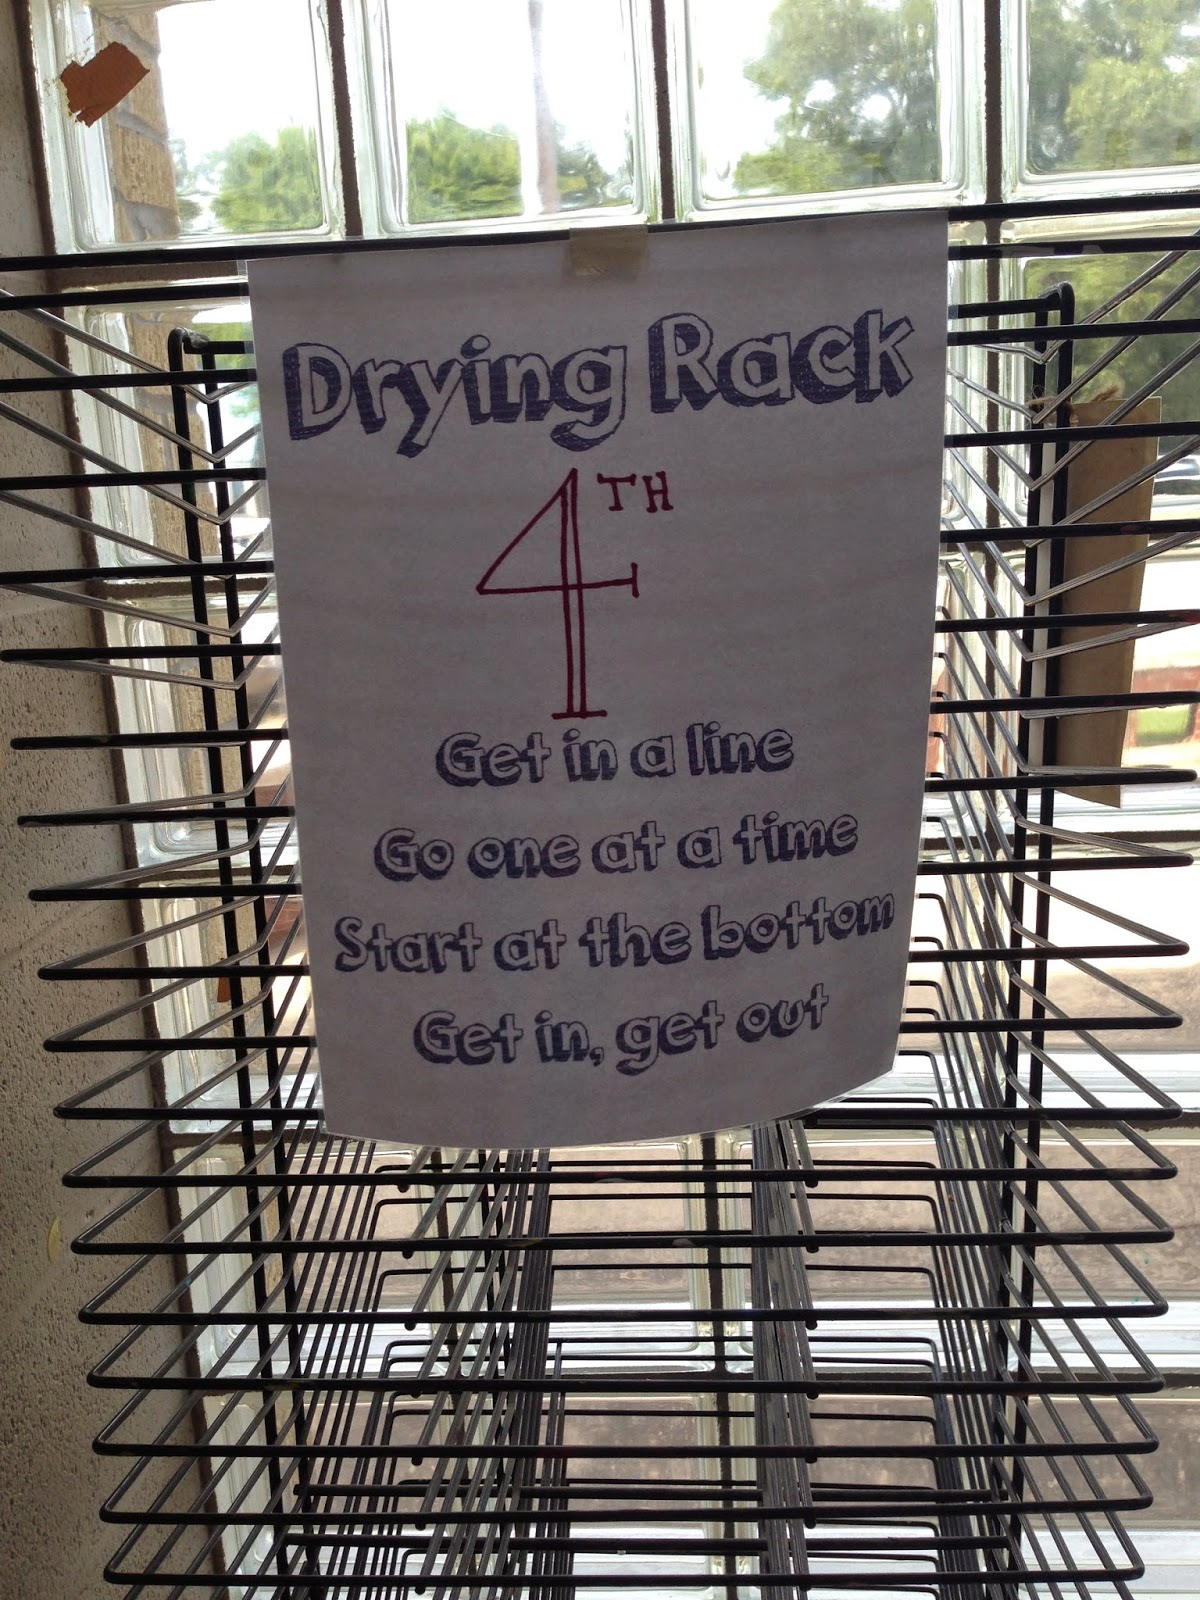 Drying Rack Procedures